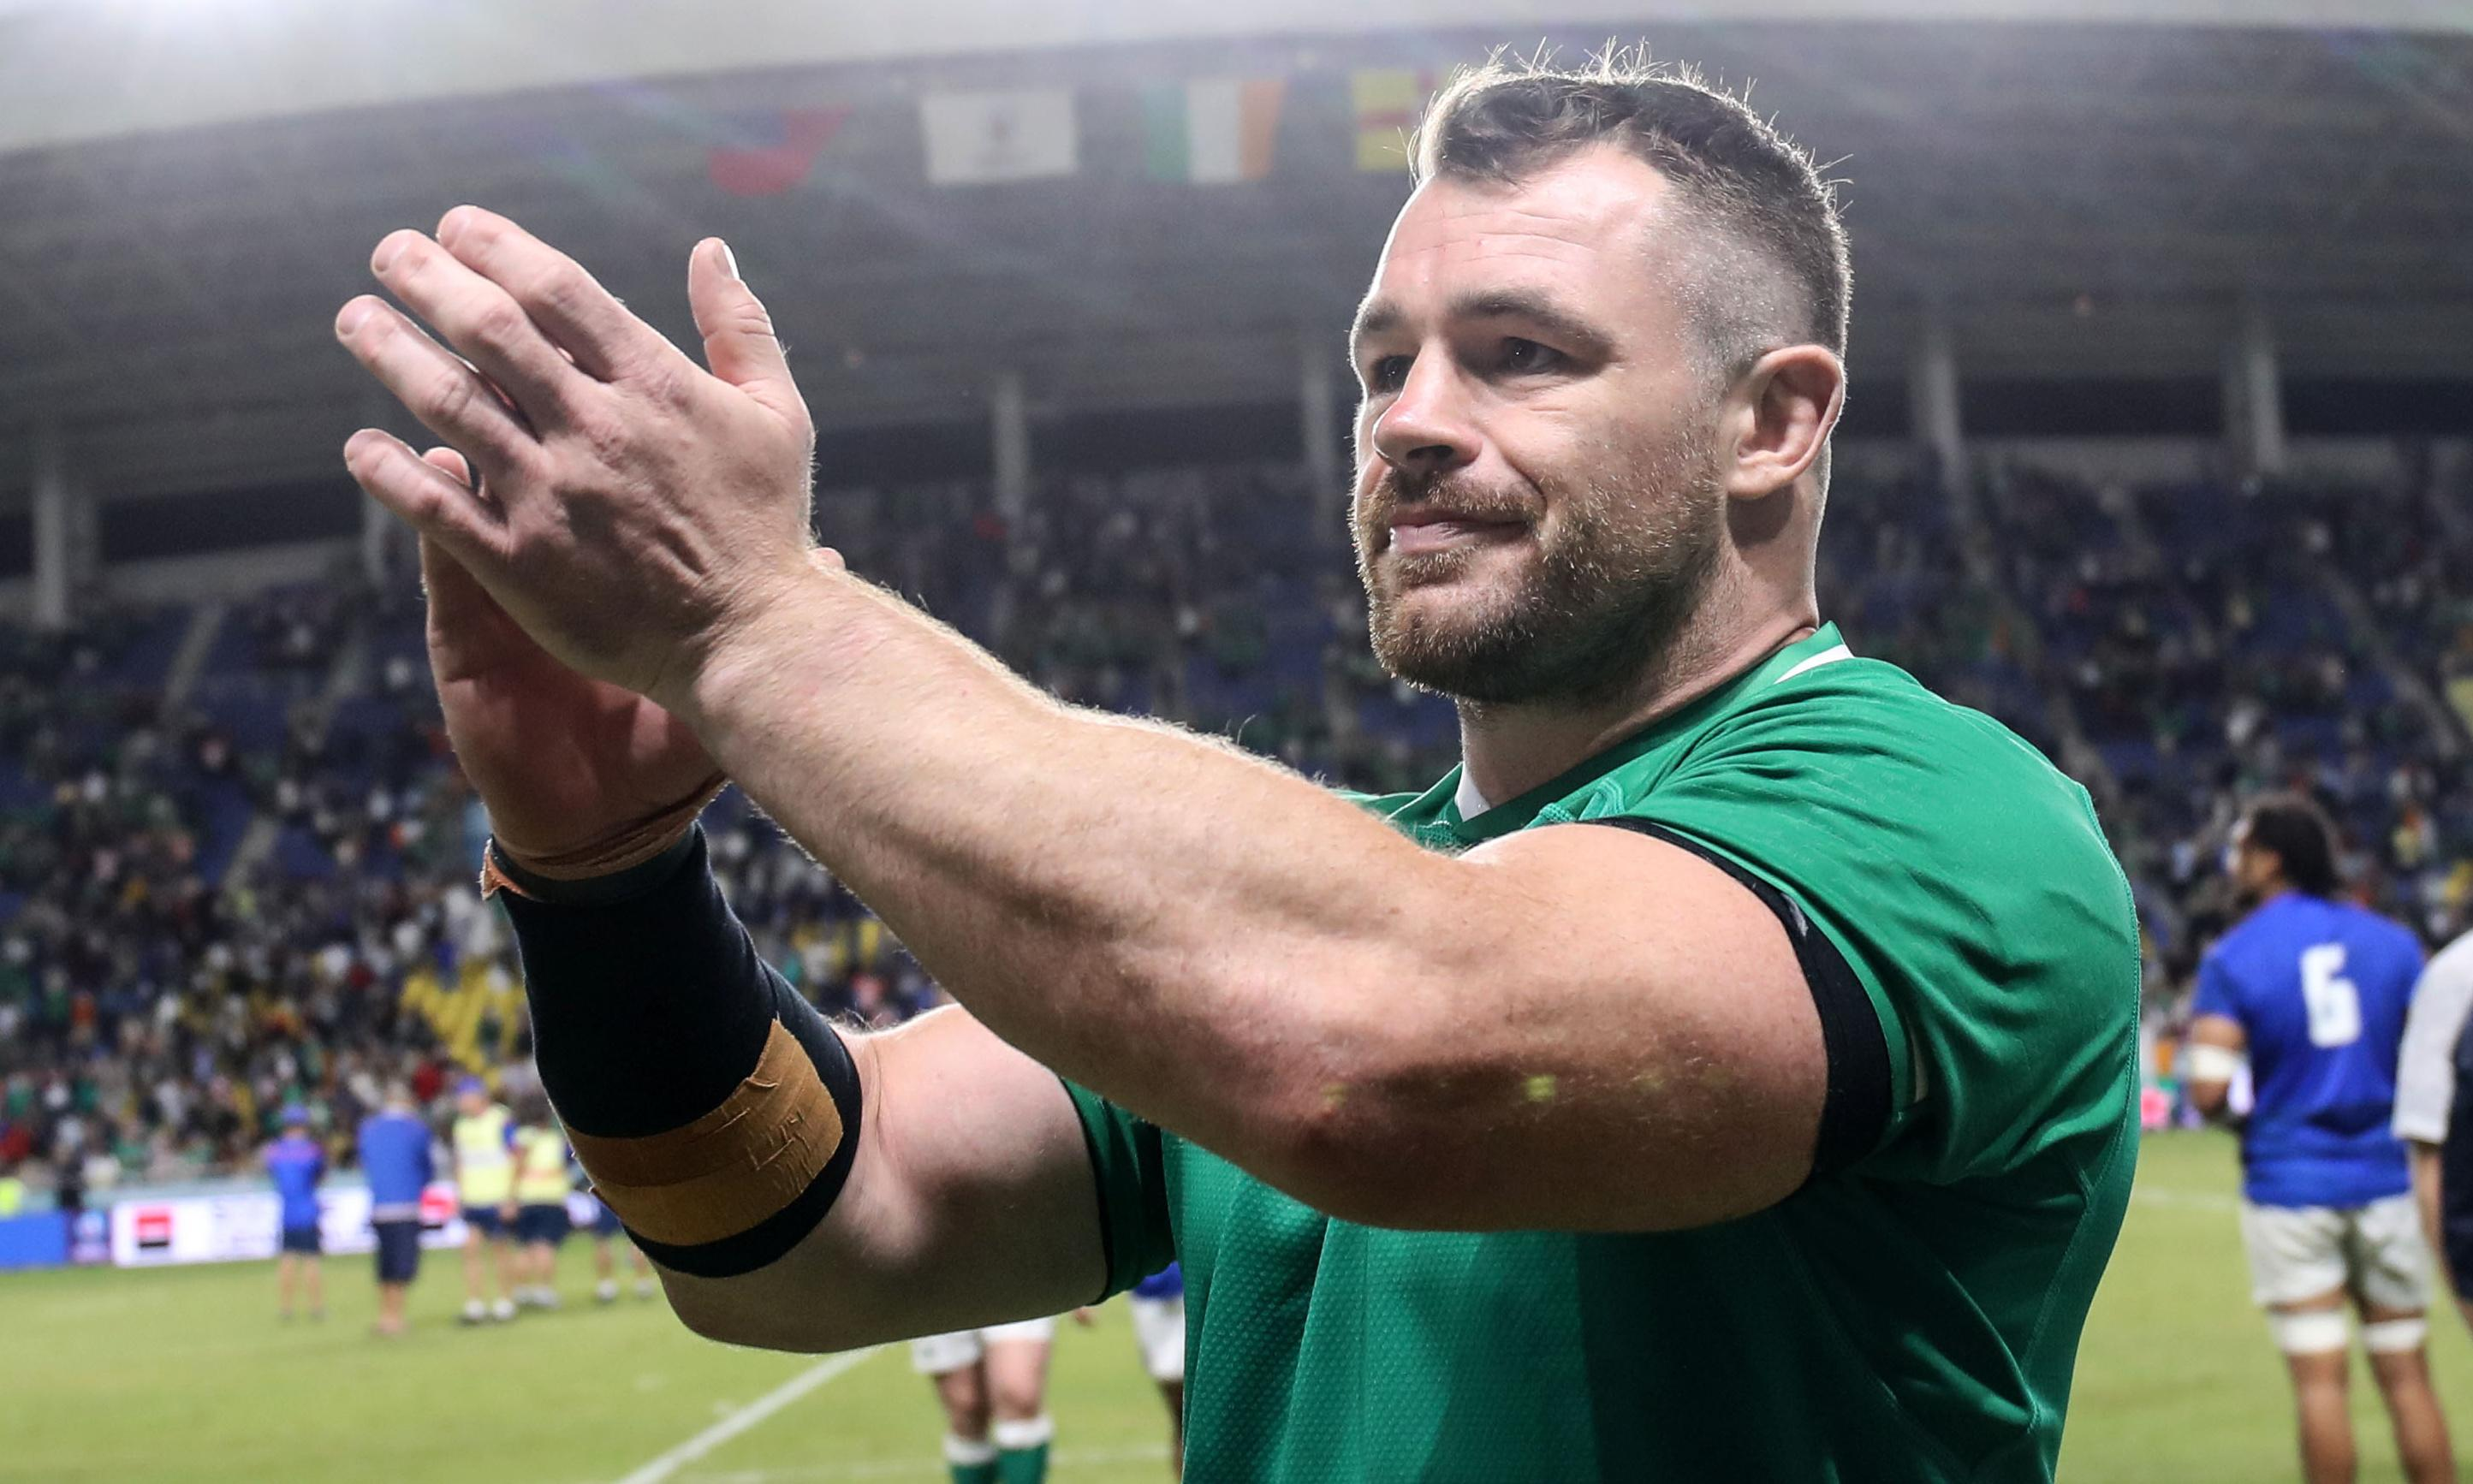 Ireland have new plans for All Blacks in quarter-final, says Cian Healey